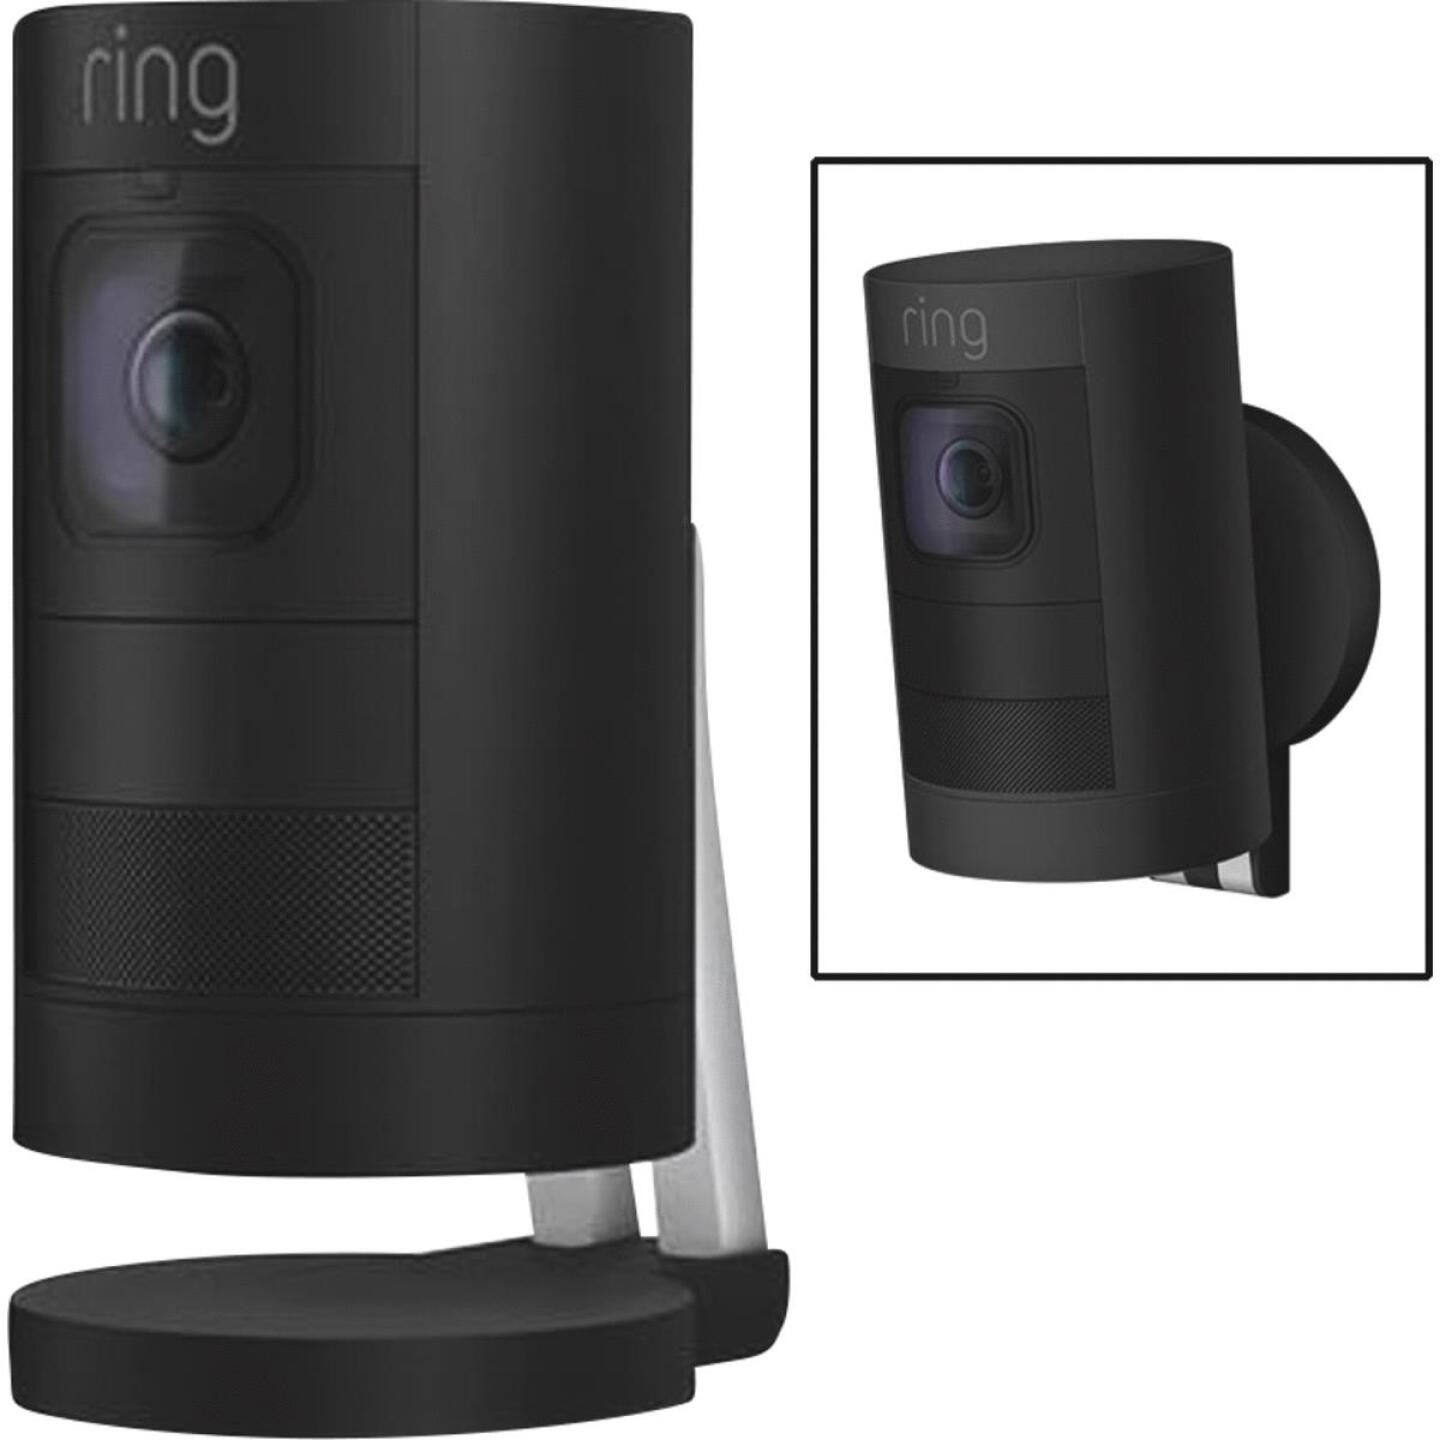 Ring Stick Up Cam Battery Operated Indoor/Outdoor Black Security Camera Image 1